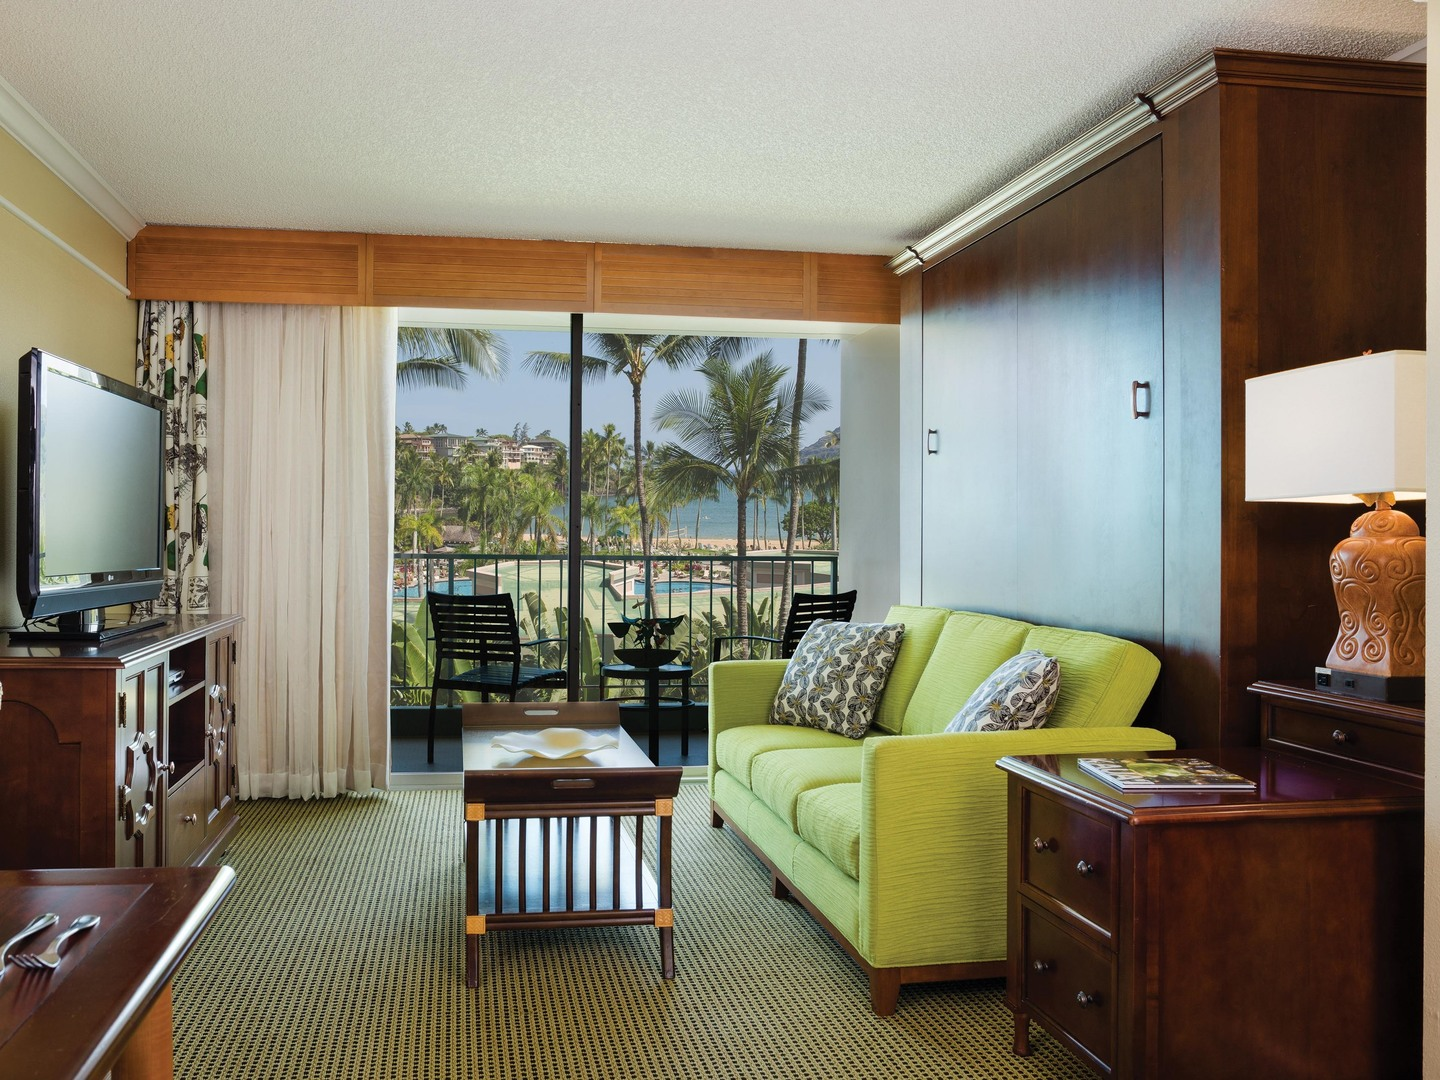 Accommodations | Marriott's Kauai Beach Club | Lihue, Kauai ... on